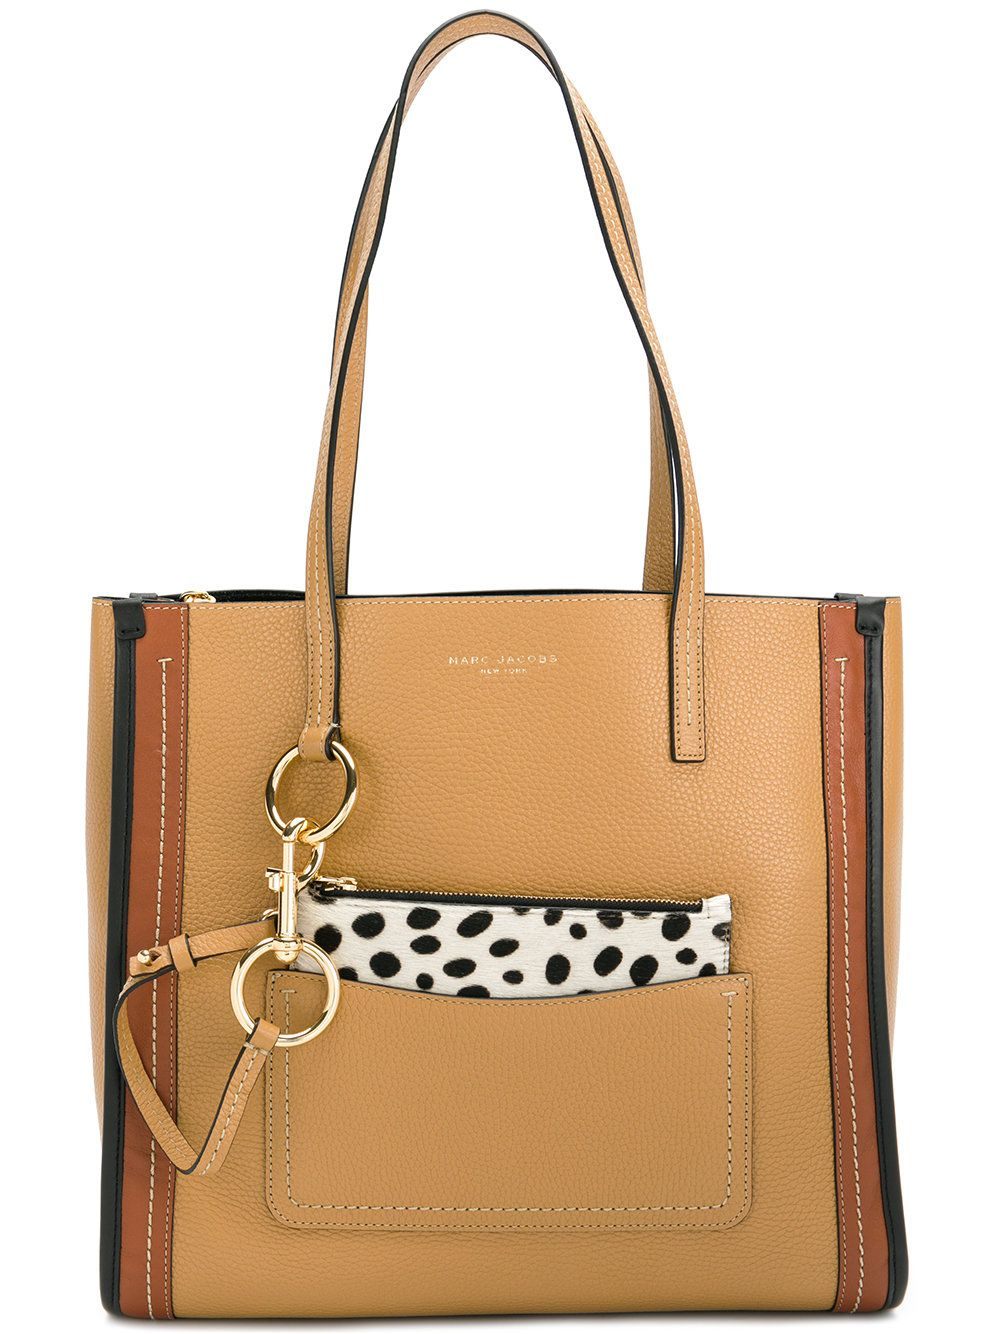 96e42eef31ec Marc Jacobs The Bold Grind tote